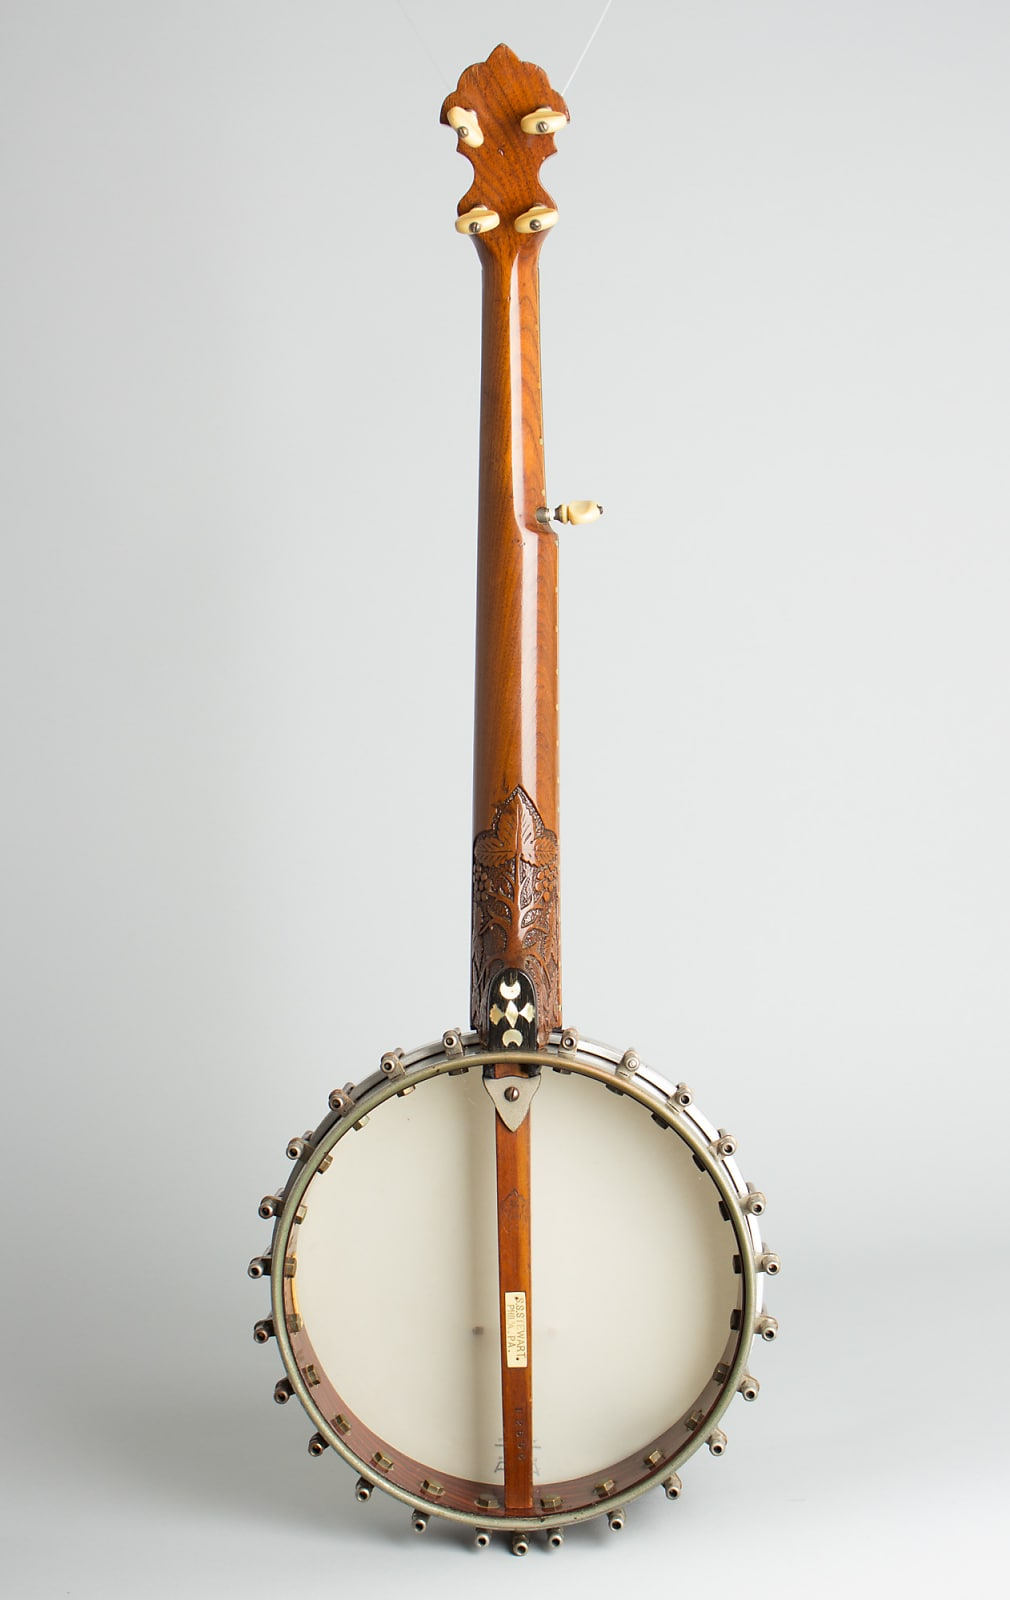 S. S. Stewart  American Princess #3 5 String Banjo (1892), ser. #12506, black gig bag case.